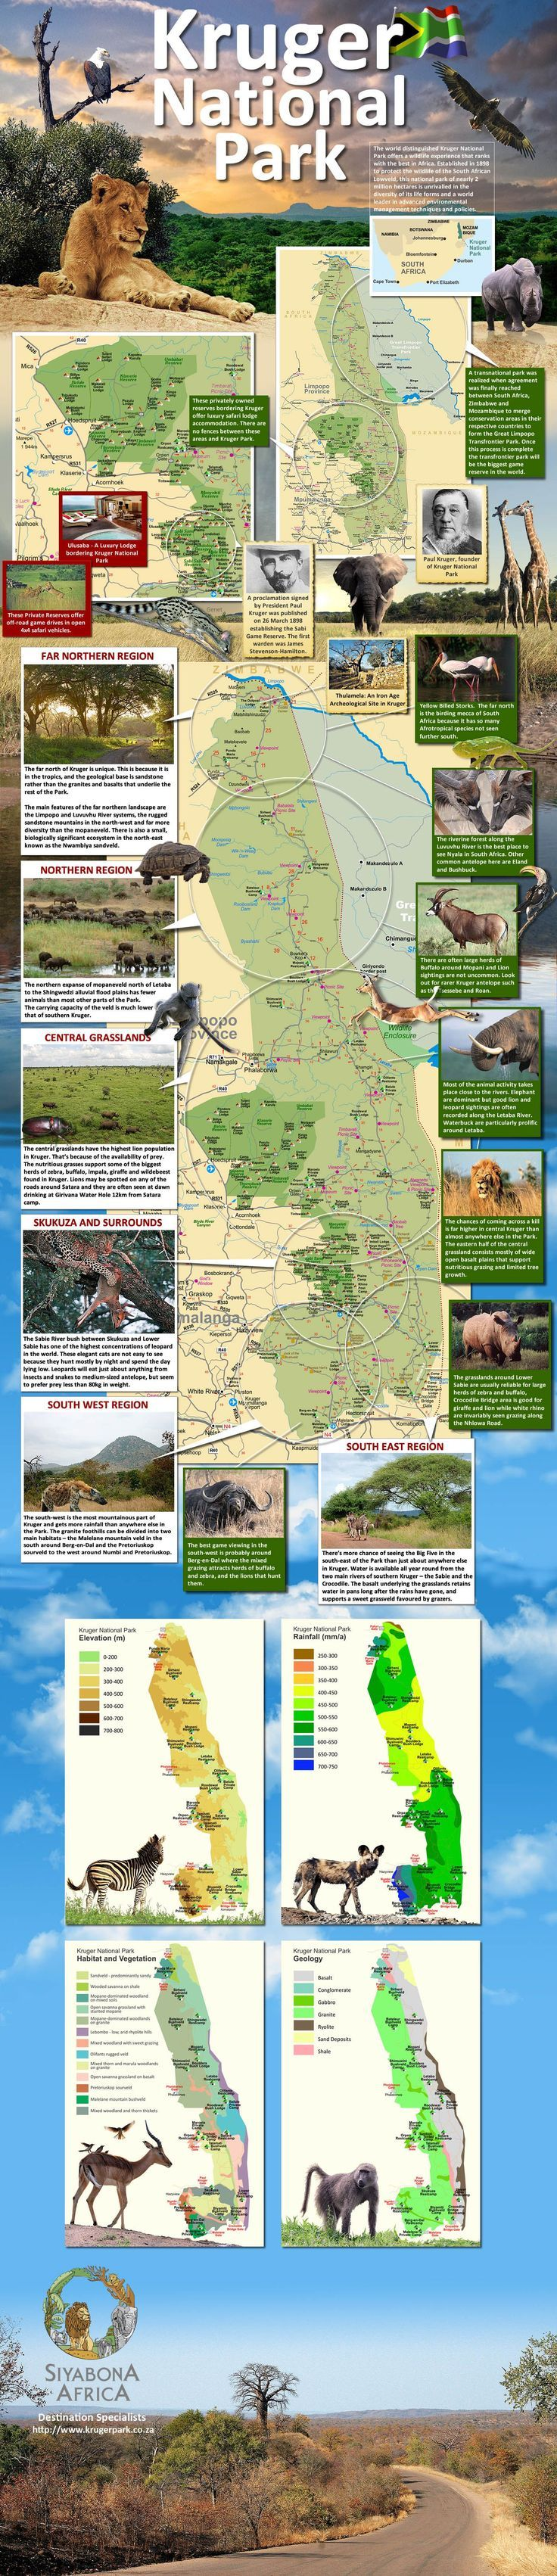 Africa Map Horn Of Africa%0A Kruger National Park  South Africa  If I could only pick one place on the